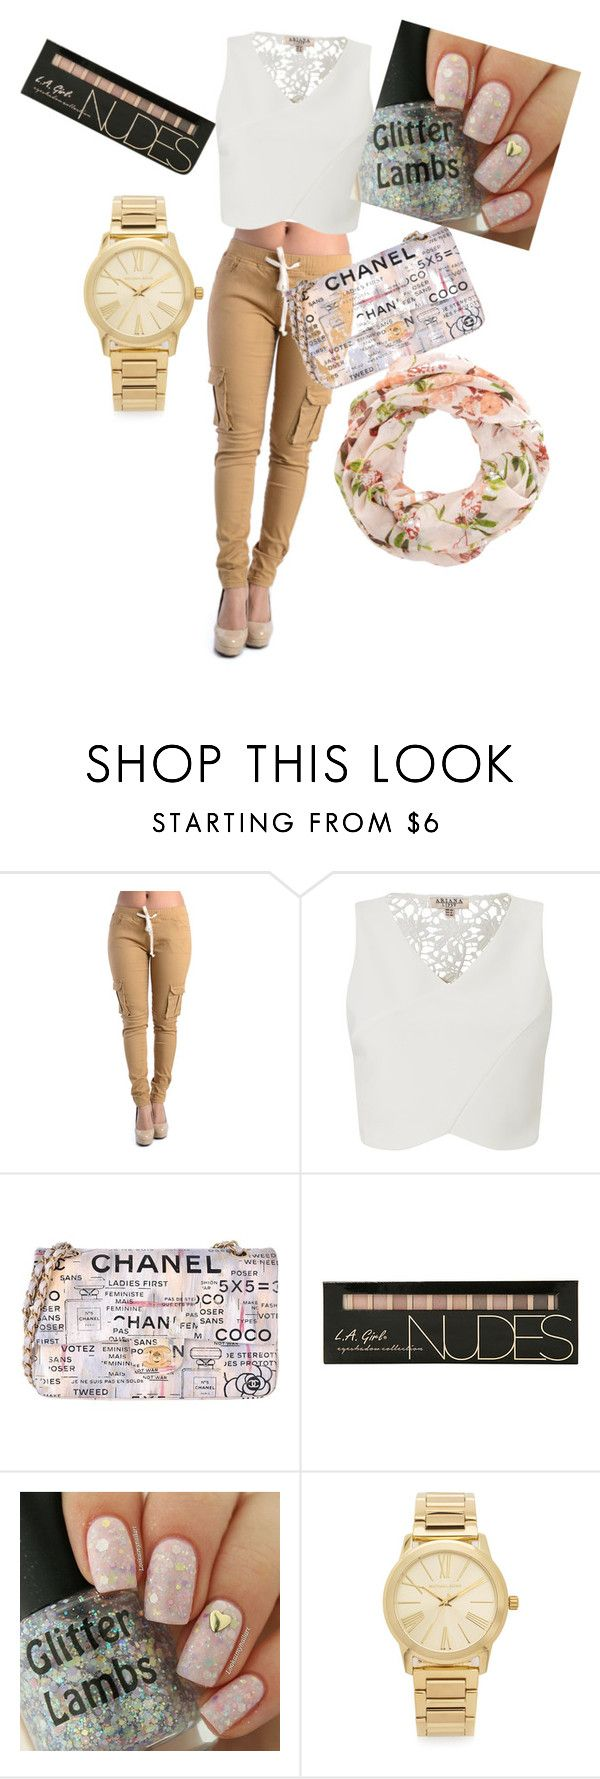 """""""Untitled #42"""" by zahir-arnela ❤ liked on Polyvore featuring Lipsy, Chanel and Michael Kors"""